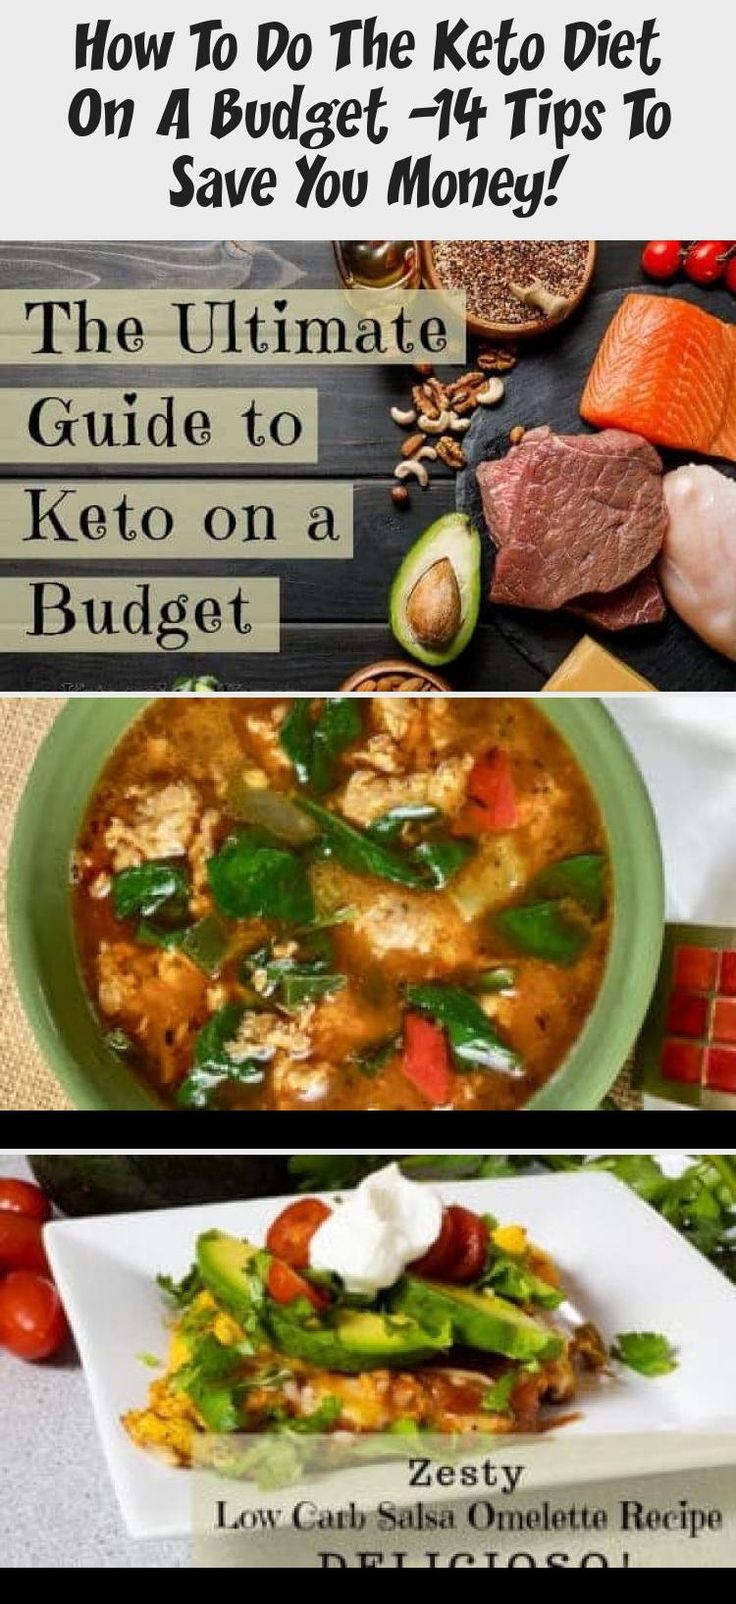 Have you ever wanted to try the keto diet, but worried you will have to buy all organic, grass fed, aka expensive foods? Worry no more!! Here is your ultimate guide to keto on a budget. Save money, eat well, and lose weight when you're on the ketogenic diet by following this guide to finding cheap foods for all your keto recipes. #ketodiet #loseweight #easyketo #MediterraneanDiet #BestDiet #LiquidDiet #DietIdeas #JuiceDiet